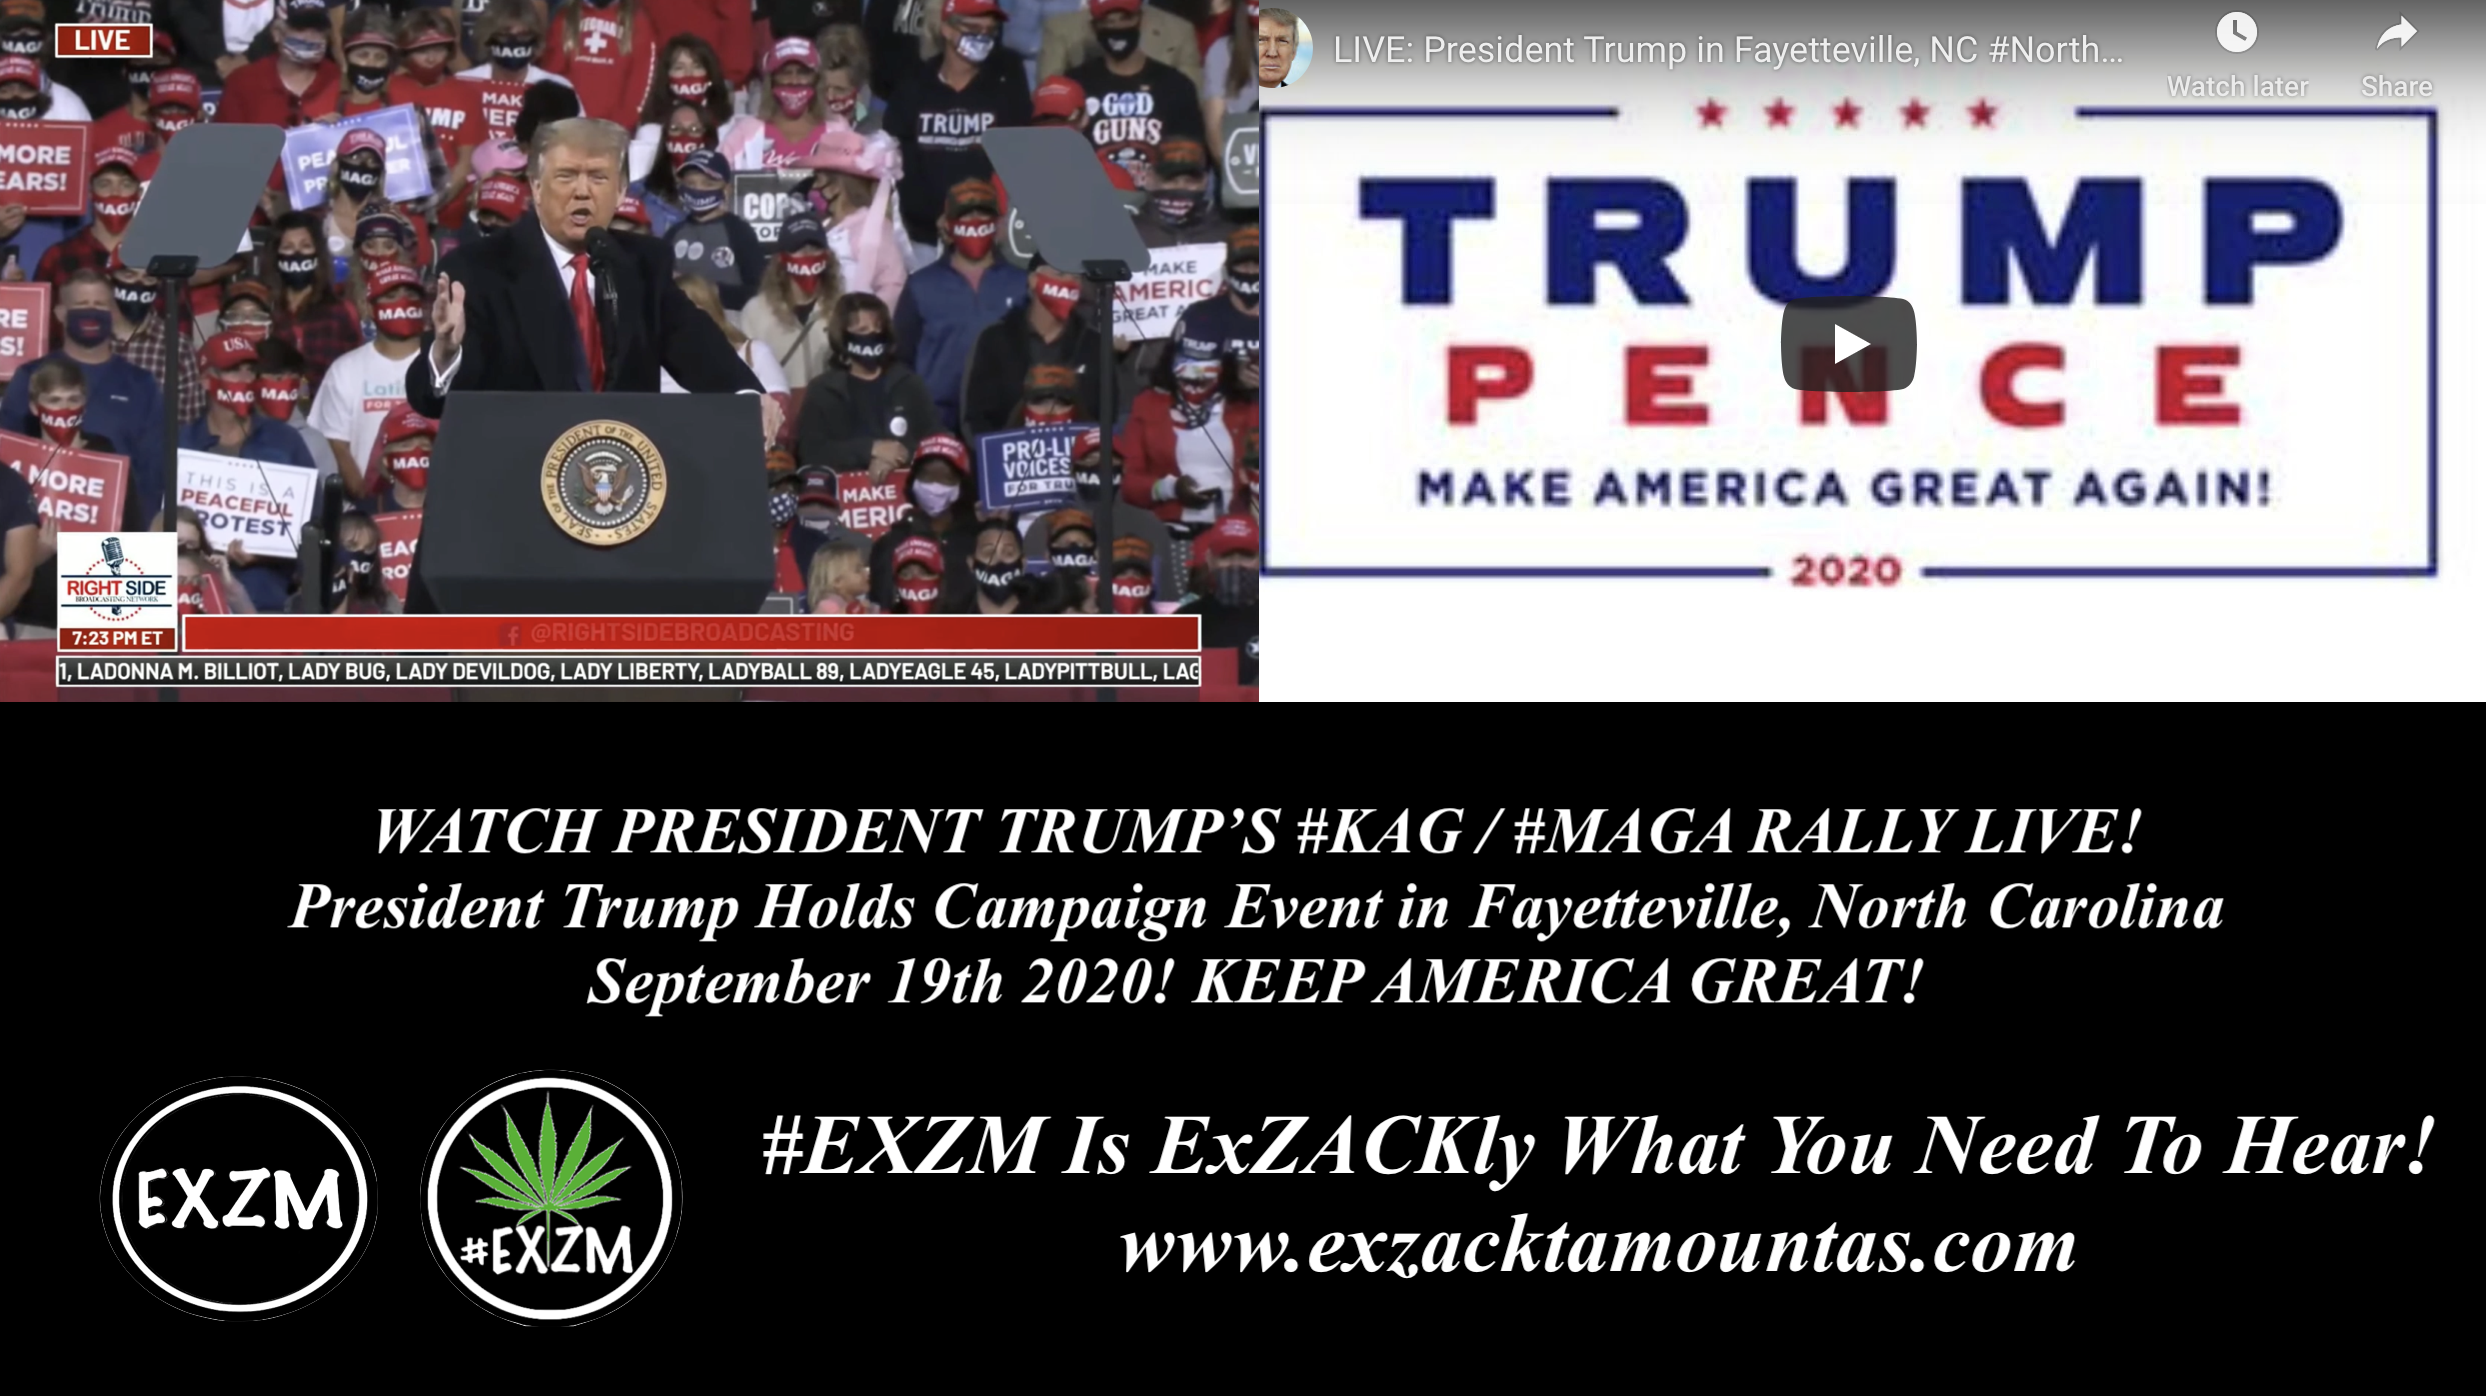 President Donald Trump KAG MAGA Rally Fayetteville North Carolina EXZM September 19th 2020